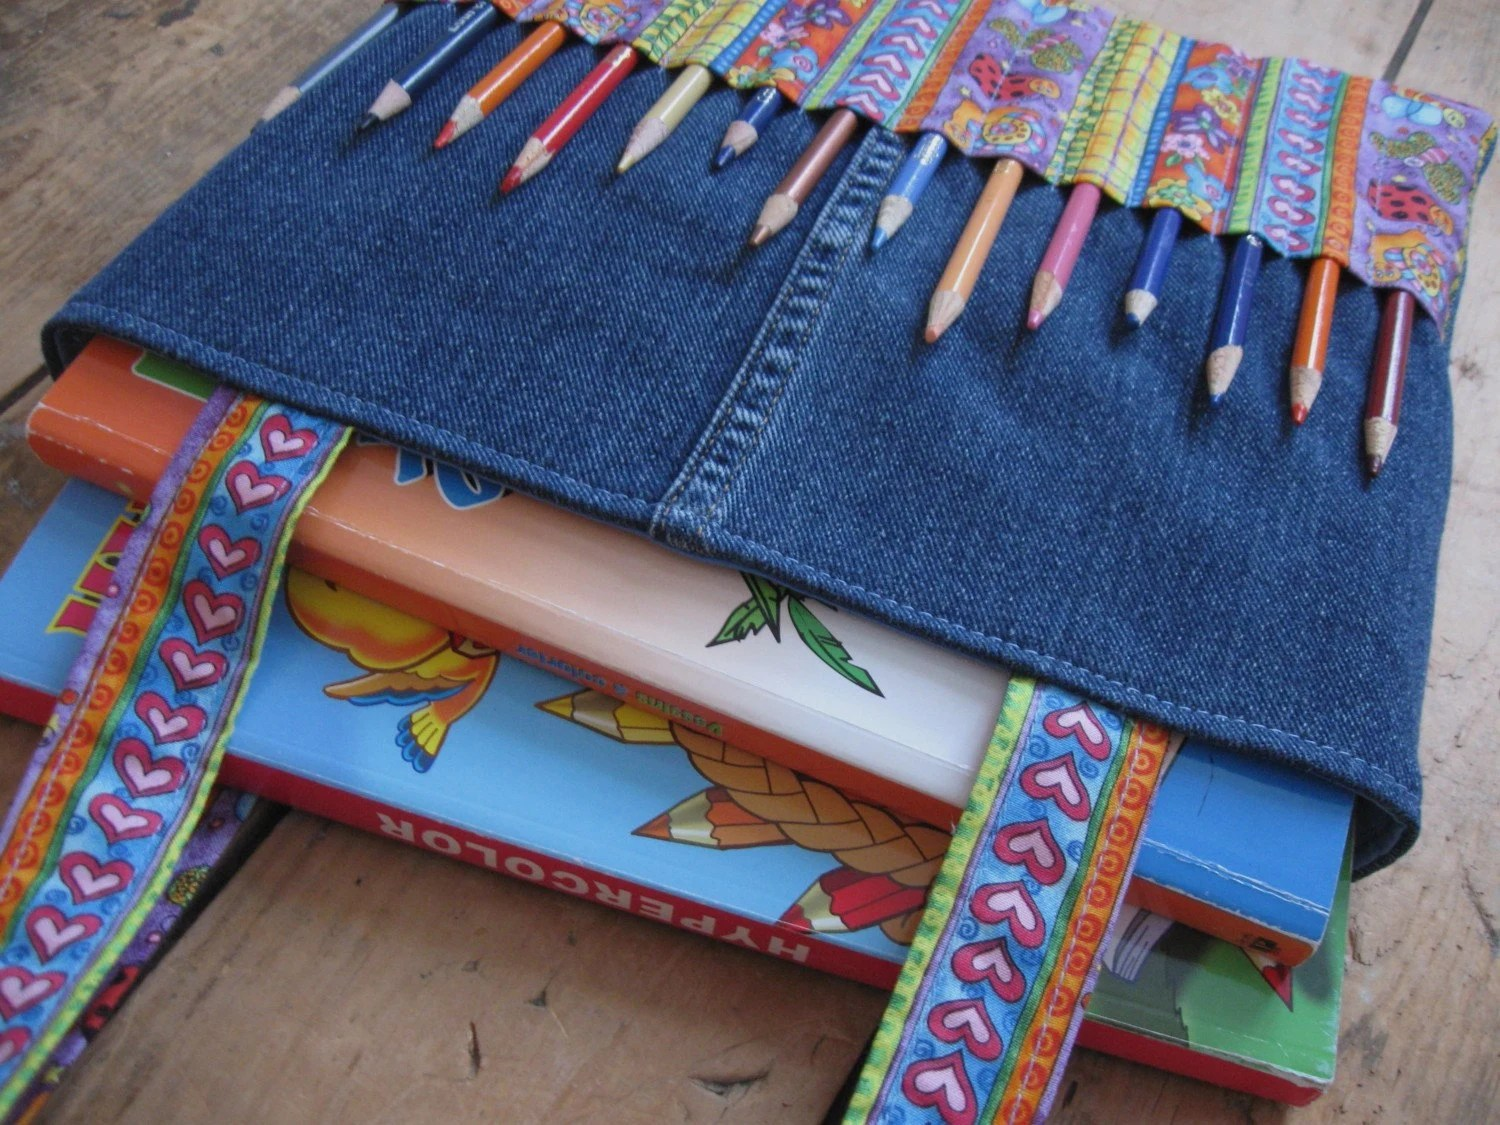 Creepycrawly coloring bag in recycled jeans - for pencils